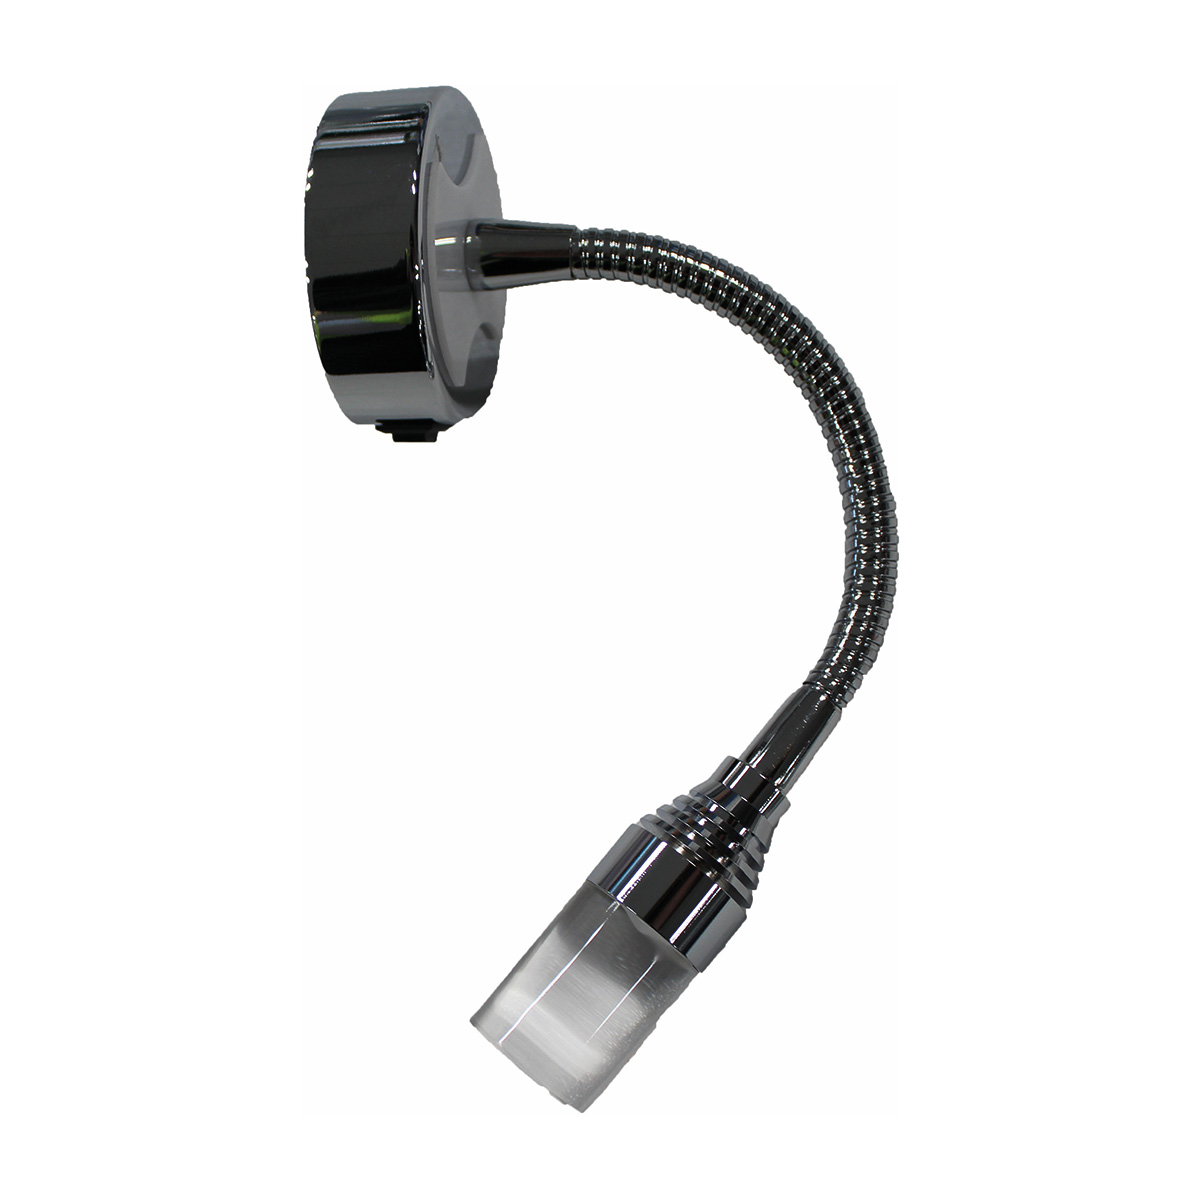 Dimatec 12V-1W Flexi Reading Light with Dual Colour